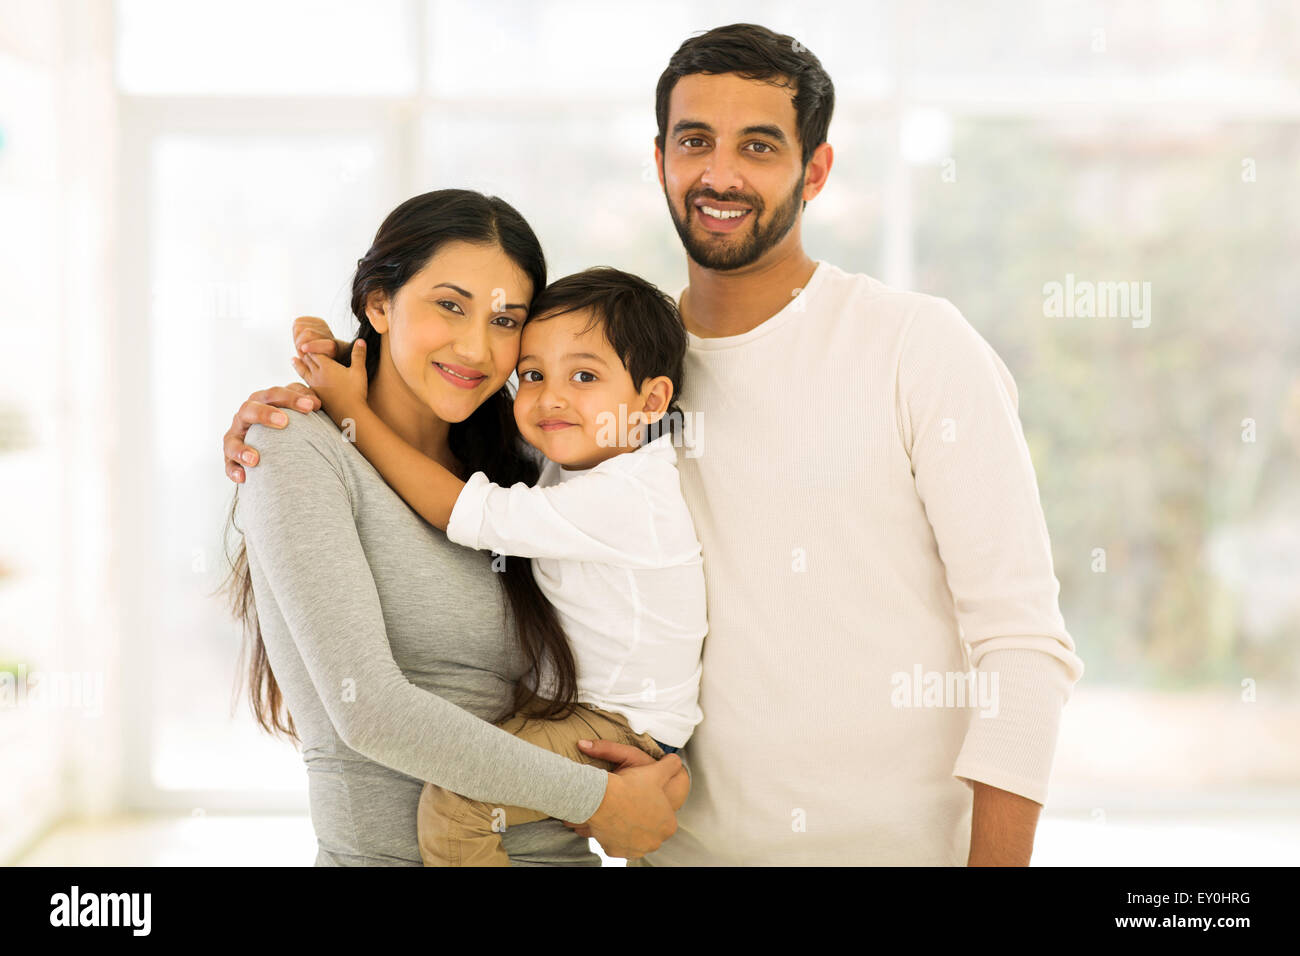 modern young Indian family portrait - Stock Image